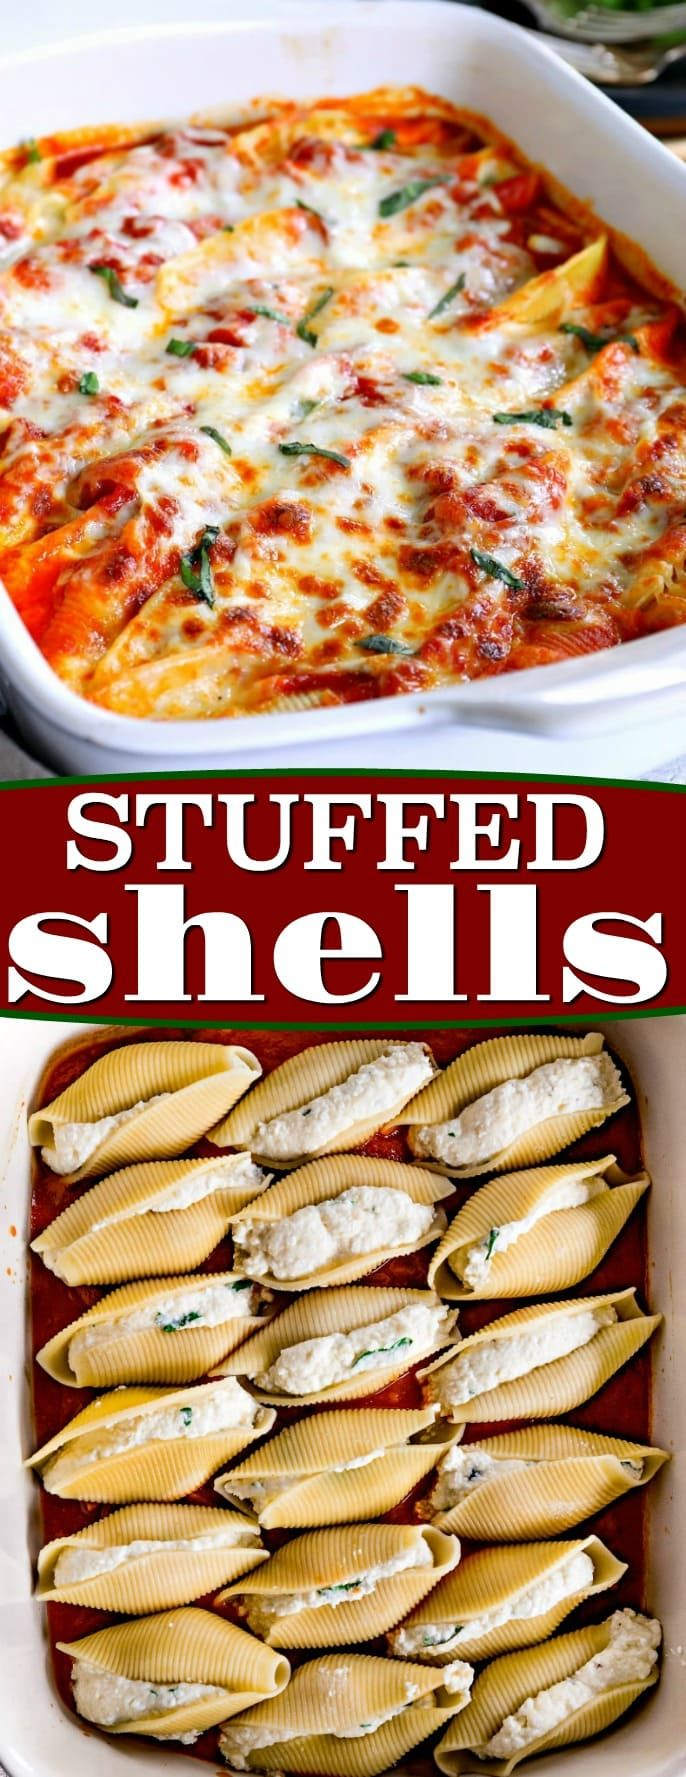 Photo of Easy Stuffed Shells